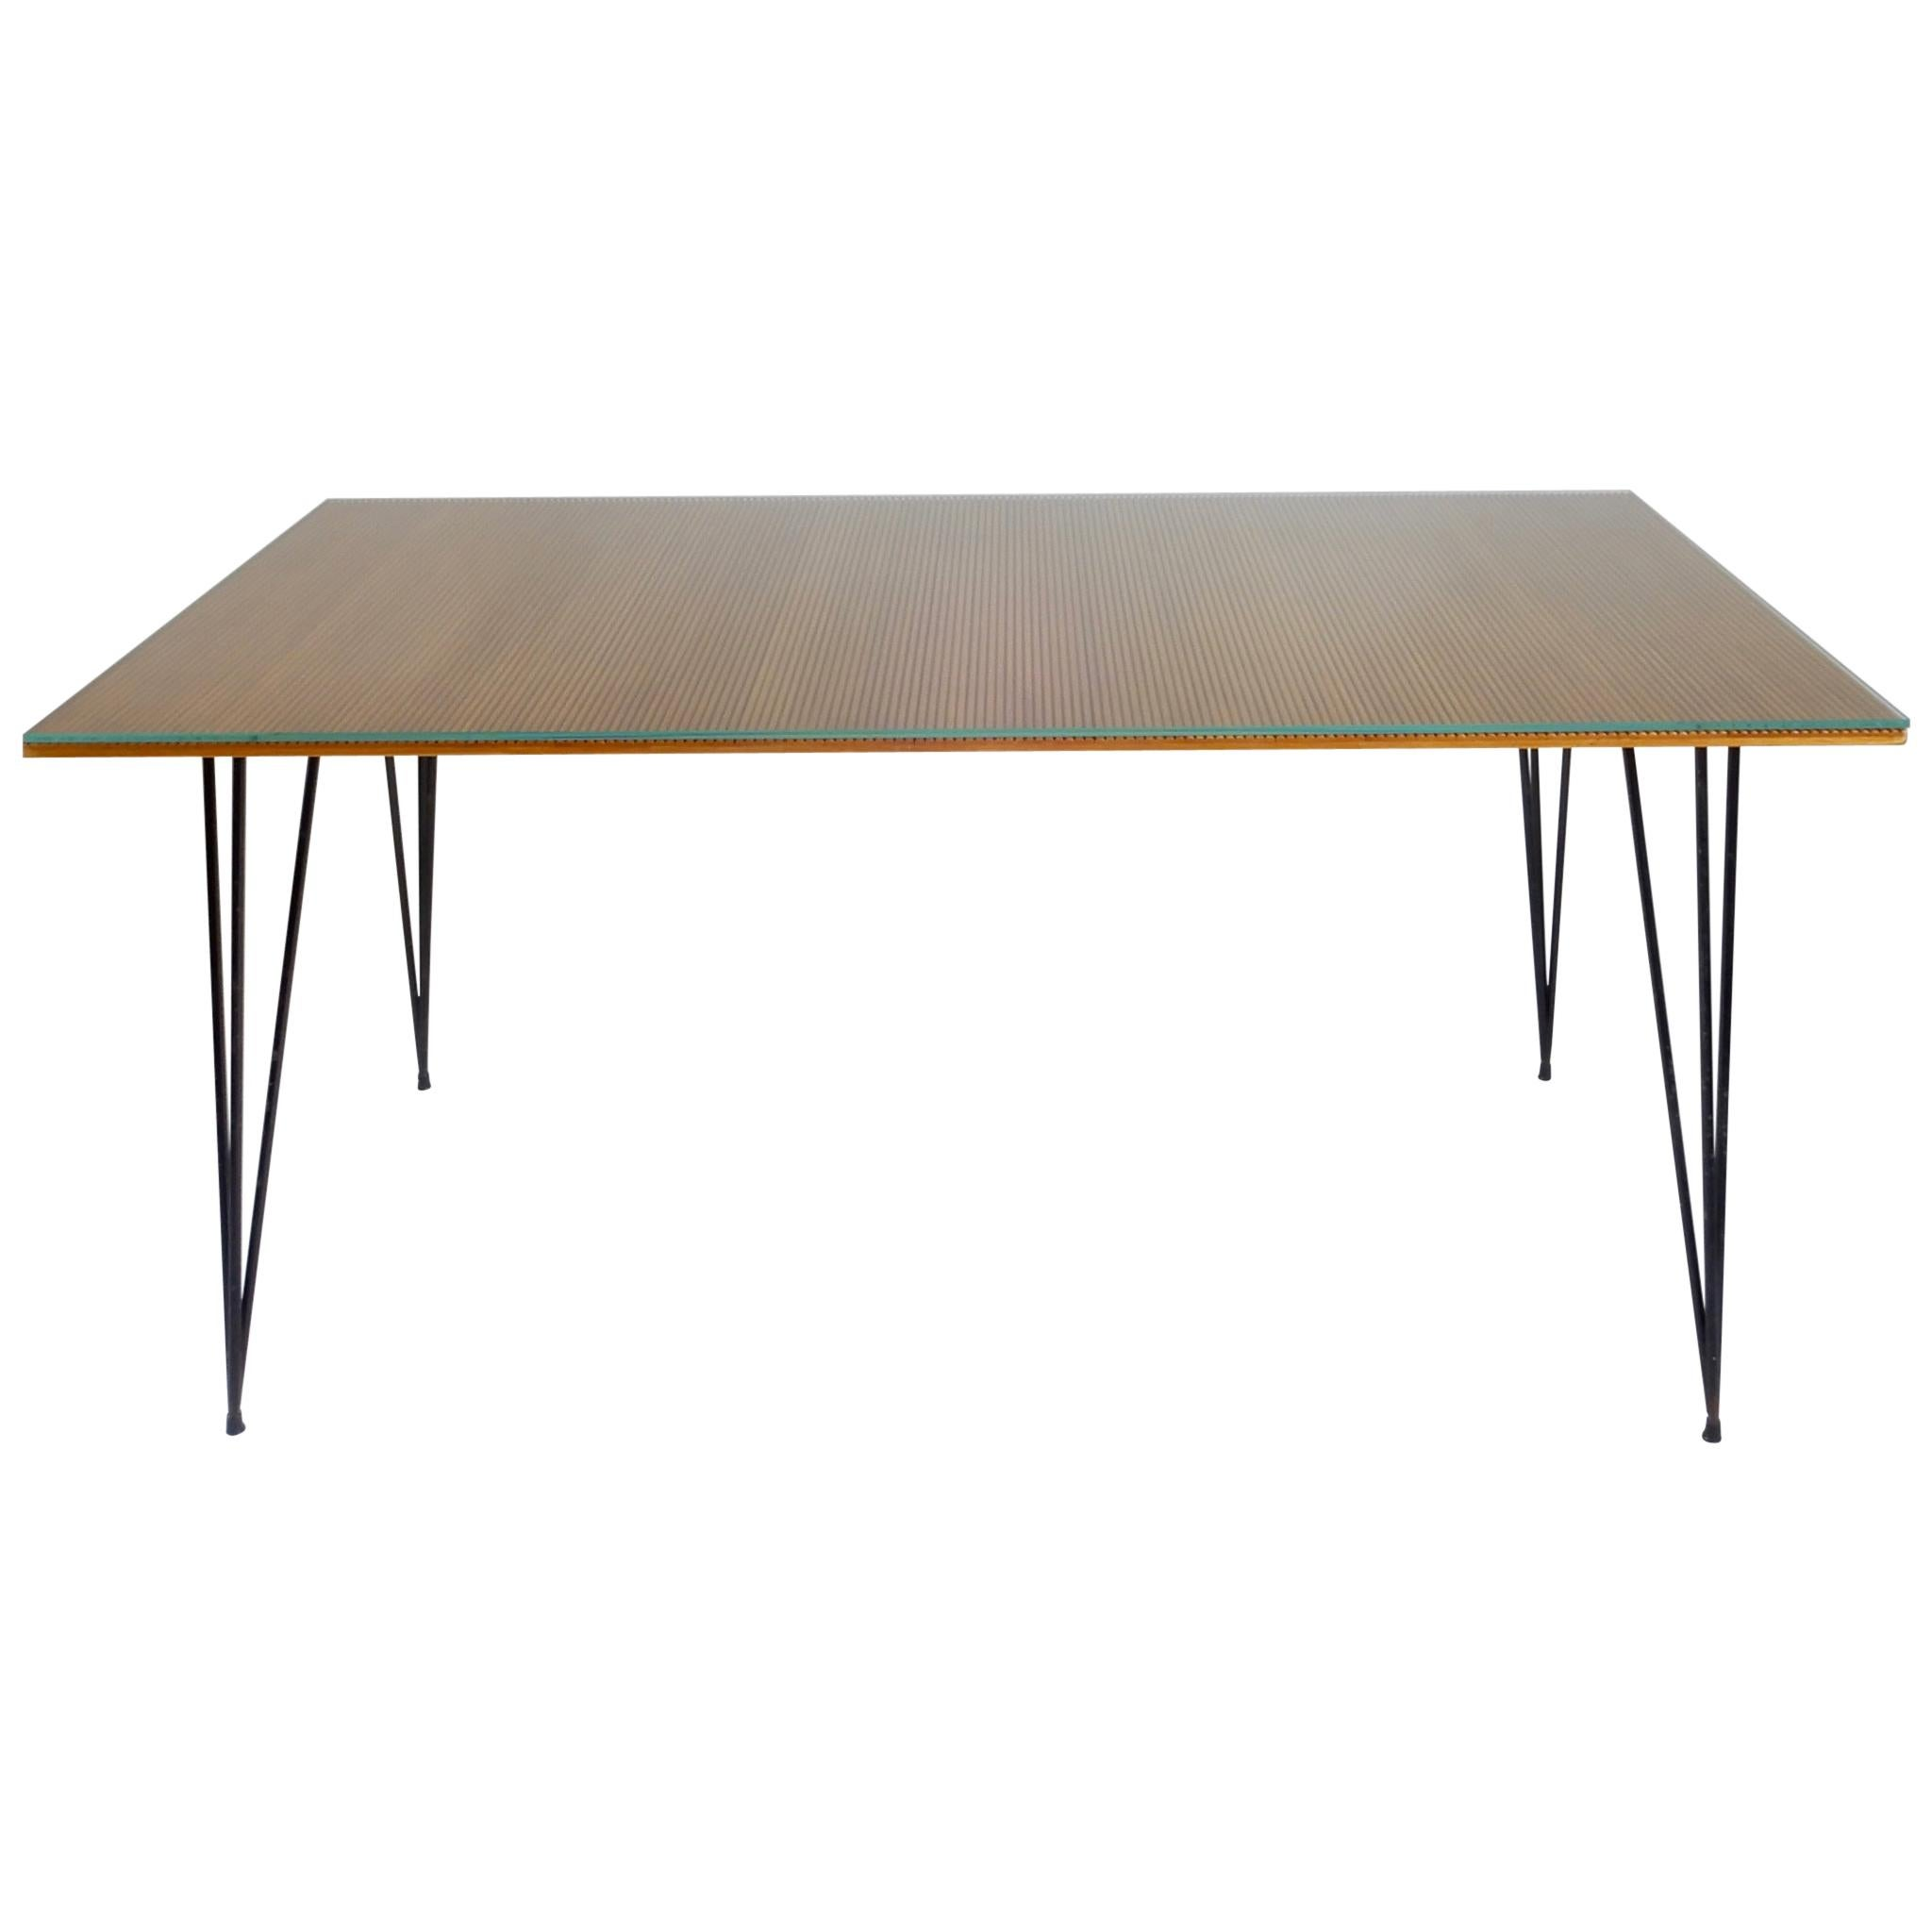 Italian Desk/ Dining Table with Wood Top and Black Metal Legs, 1950s